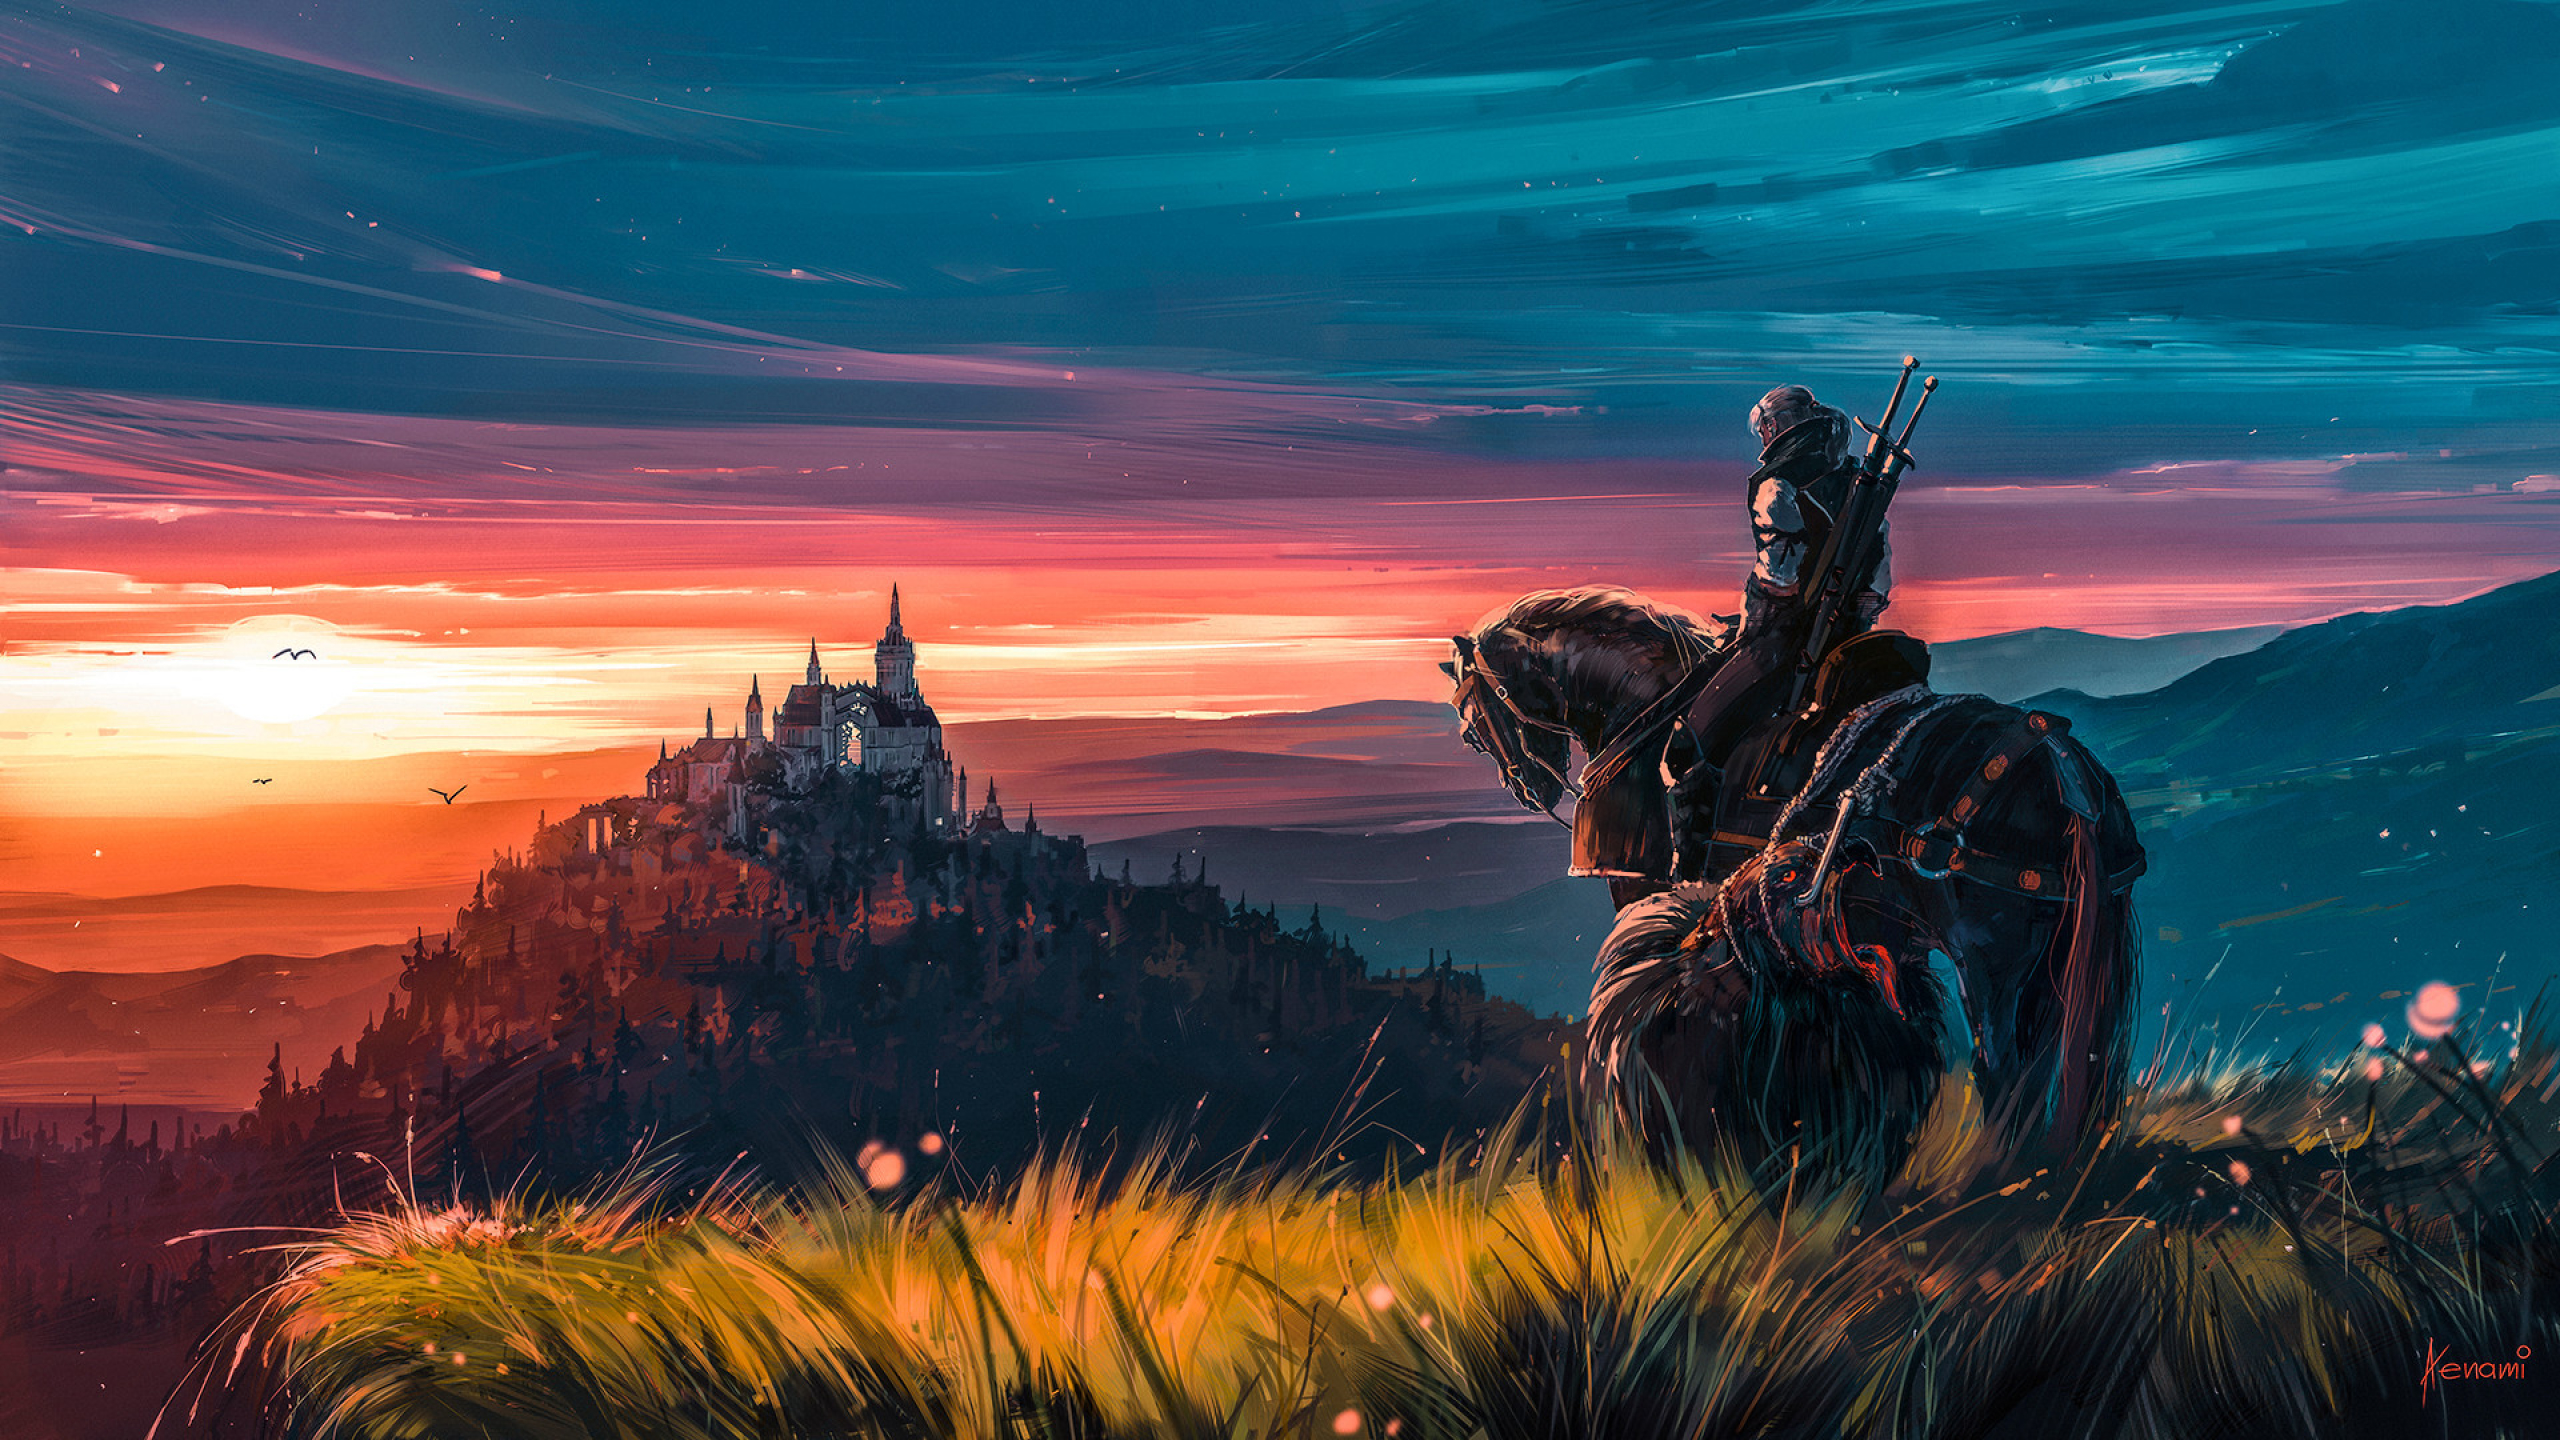 2560x1440 Witcher 3 Artstation Fan Art 1440p Resolution Wallpaper